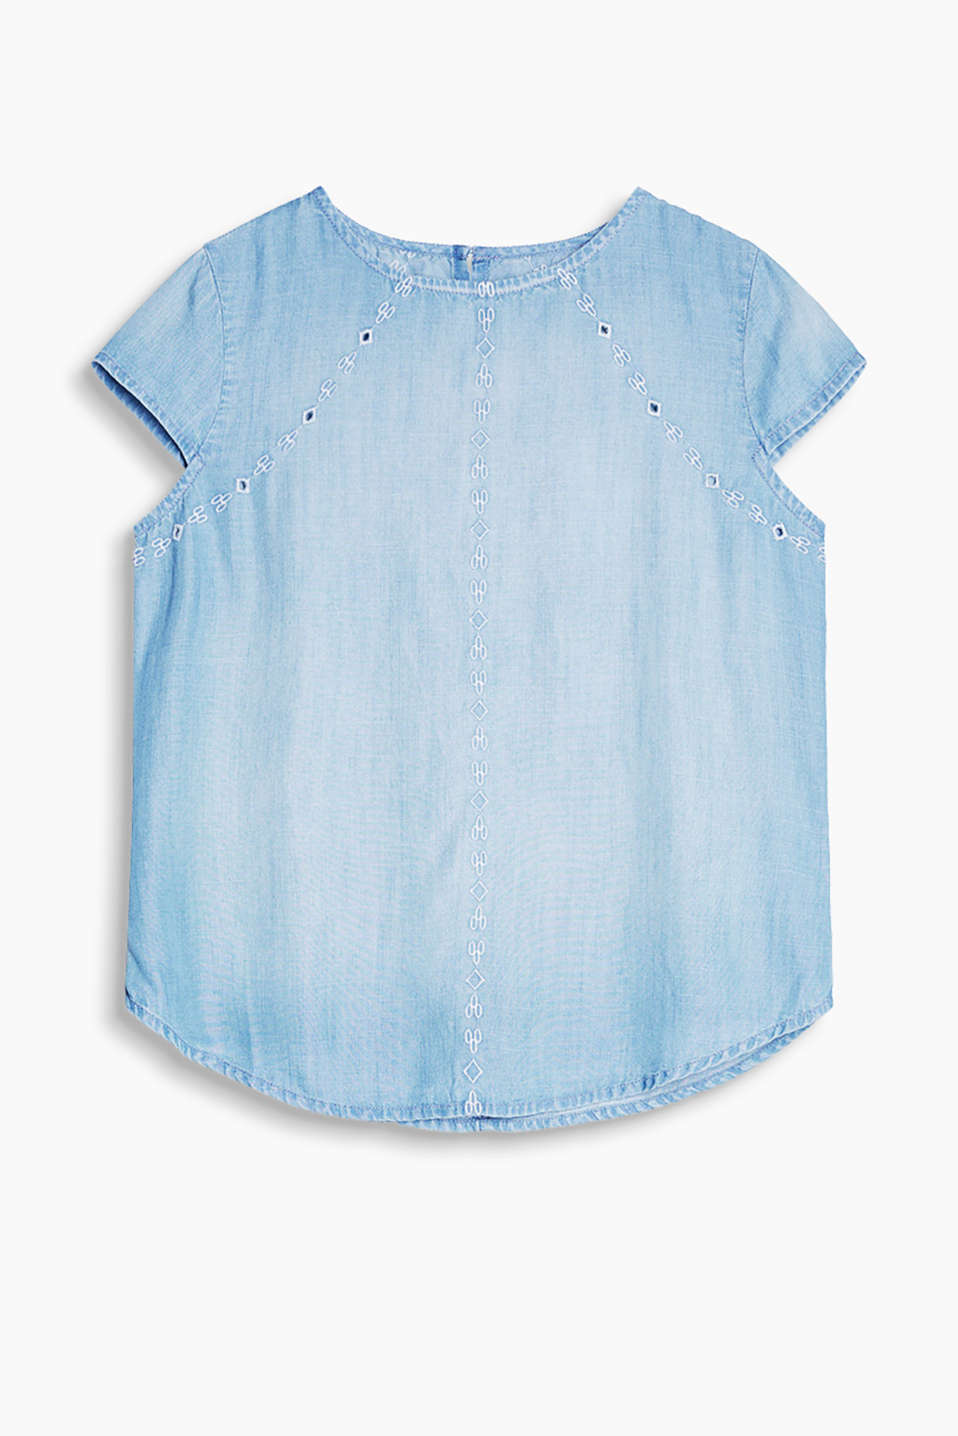 Summery, lightweight denim blouse with embroidery and a keyhole neckline